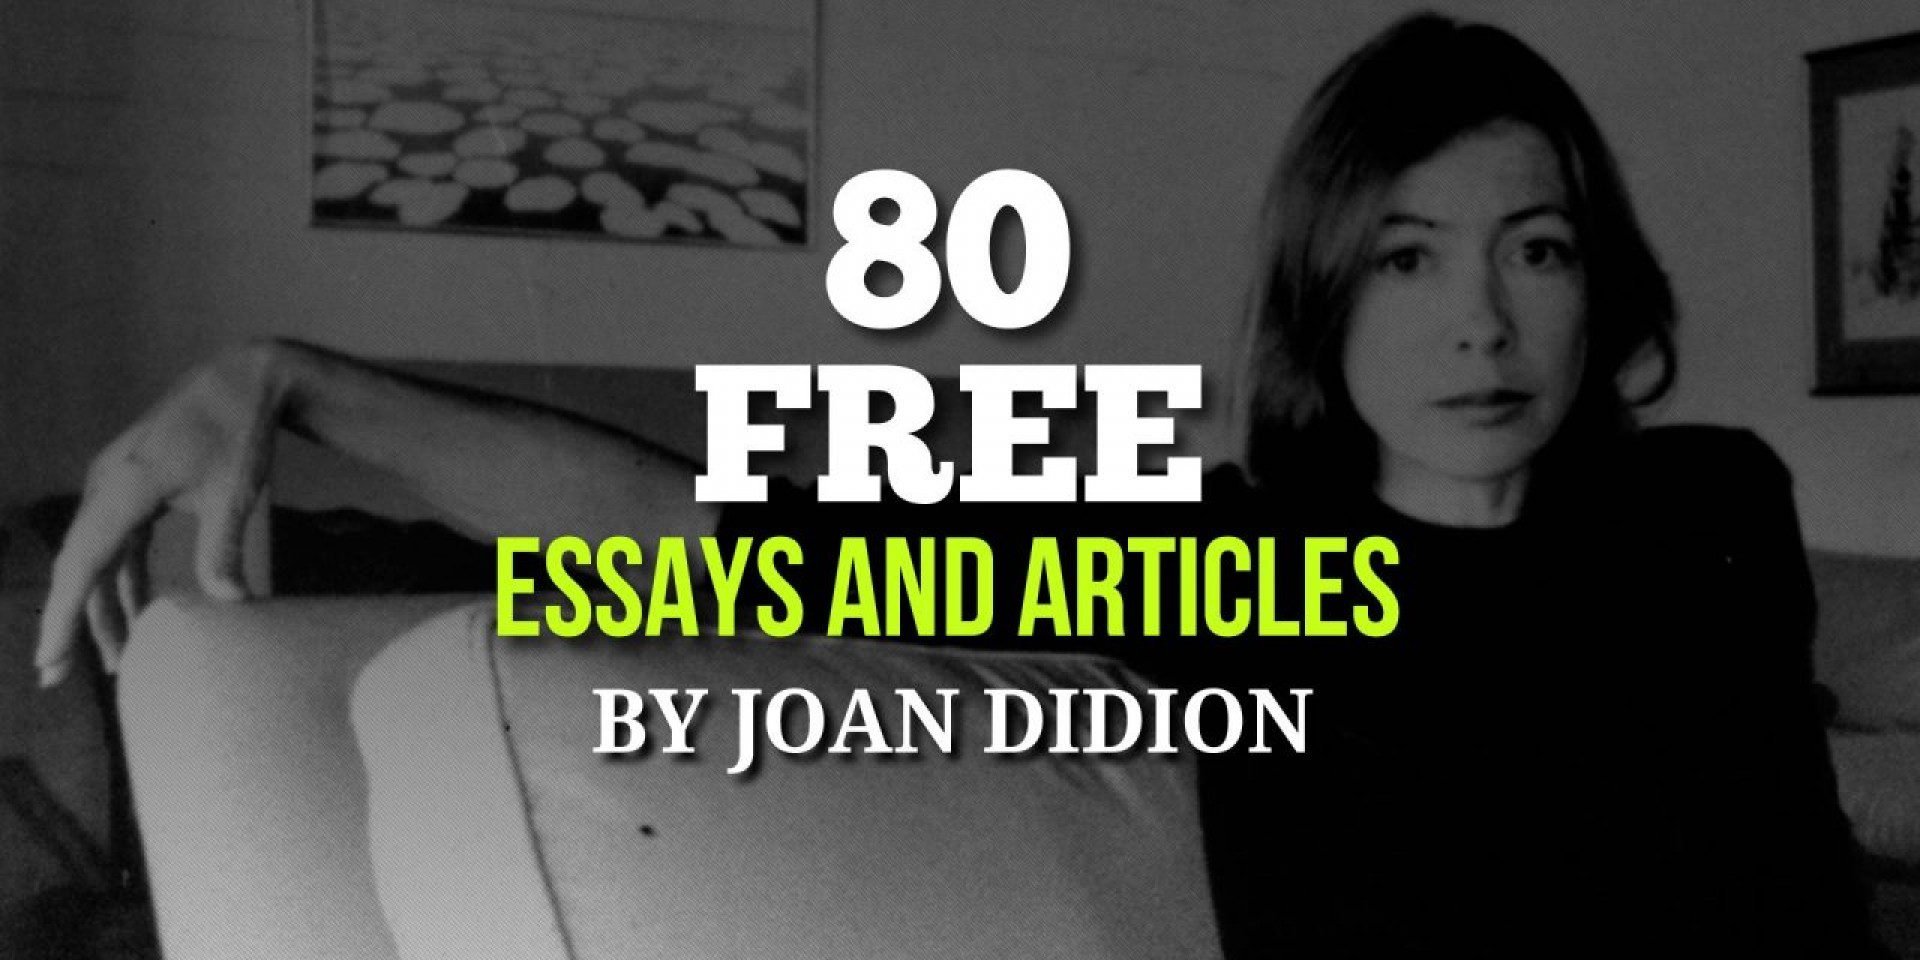 005 Joan Didion Essays Fi Joandidion 1280x640 Essay Singular Collections On Santa Ana Winds Amazon 1920